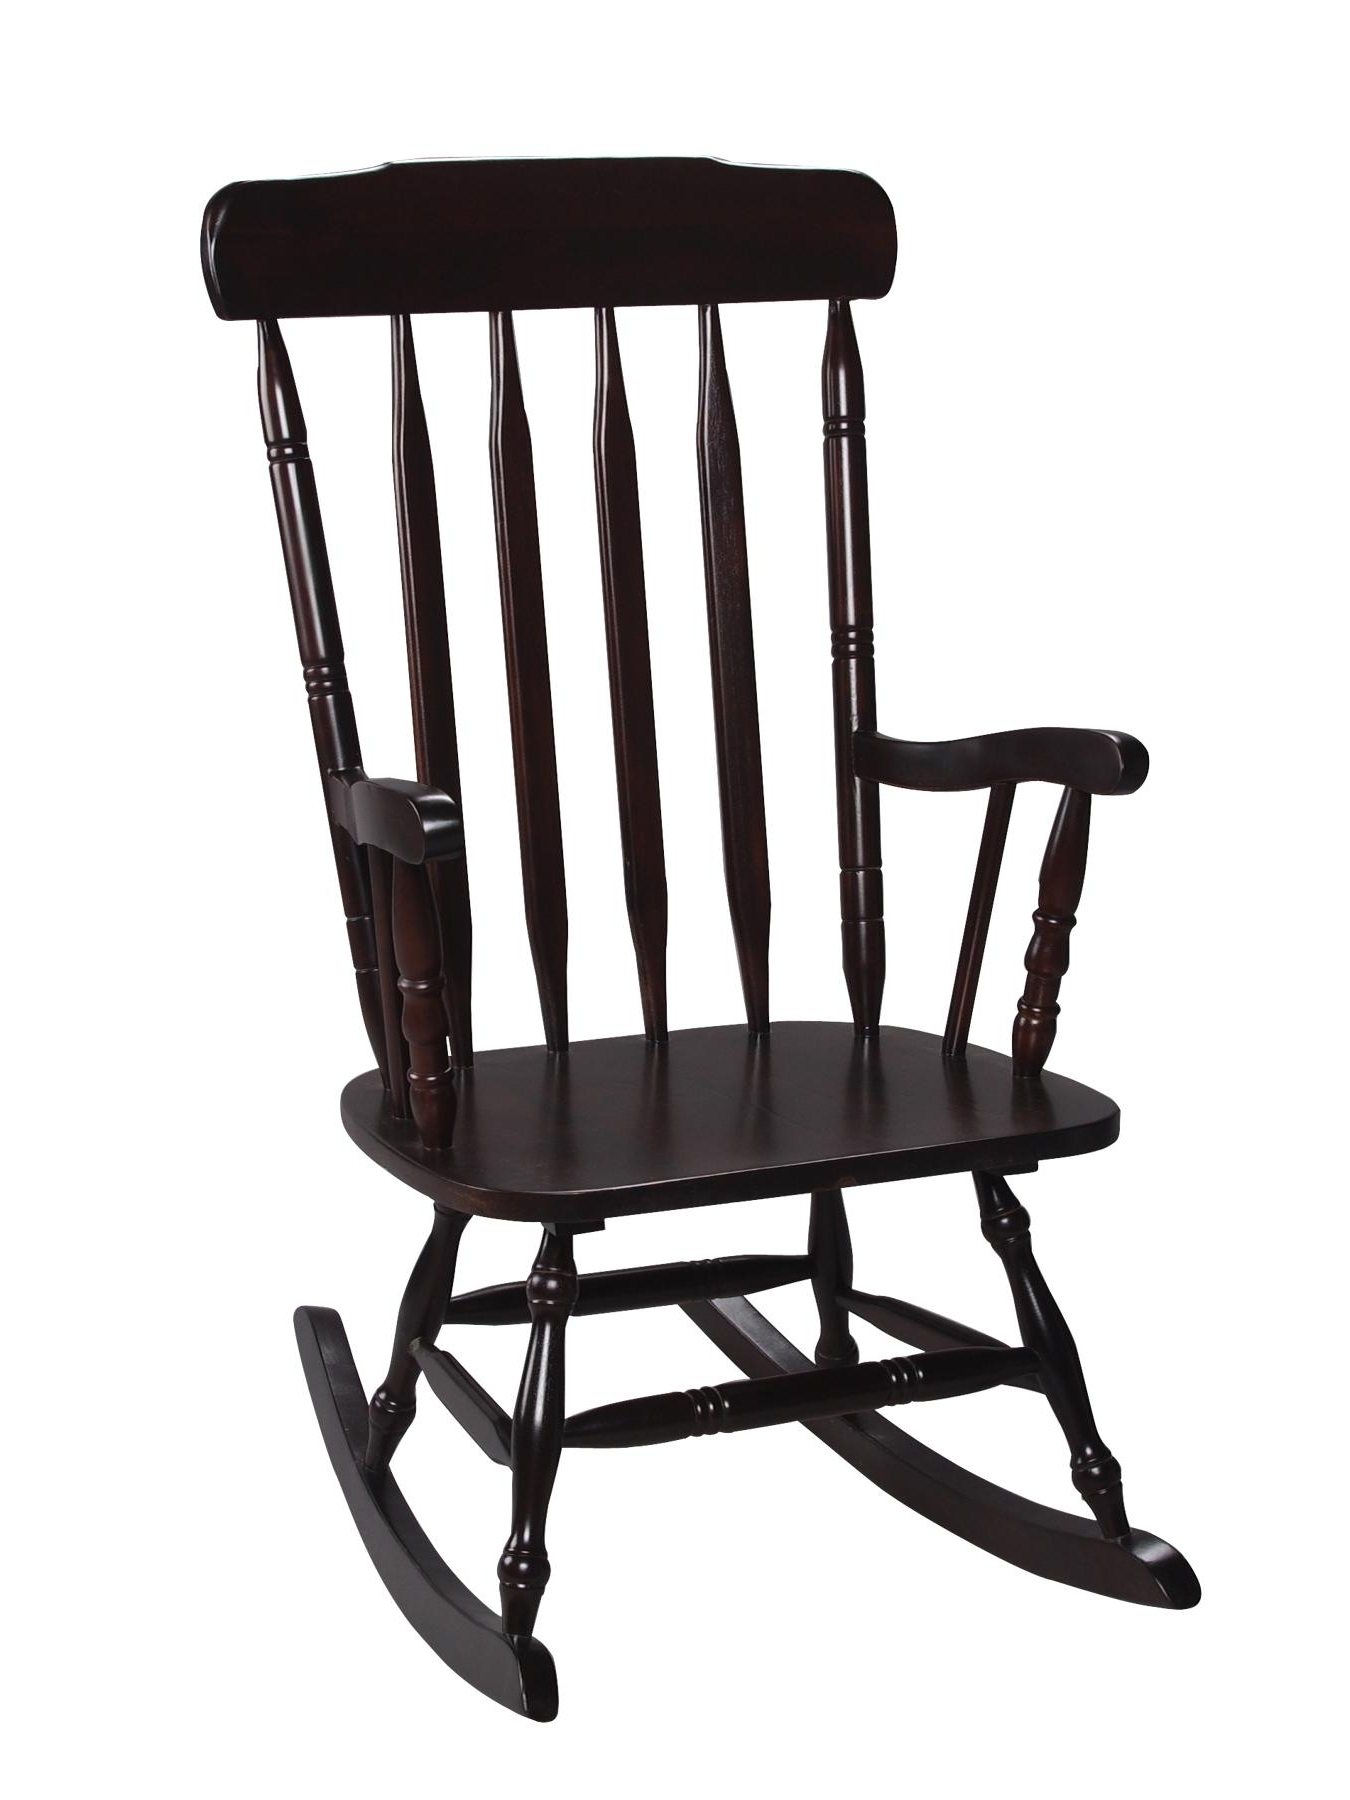 Black Rocking Chairs Intended For Most Current Surprising Black Rocking Chair On Famous Chair Designs With (View 2 of 15)